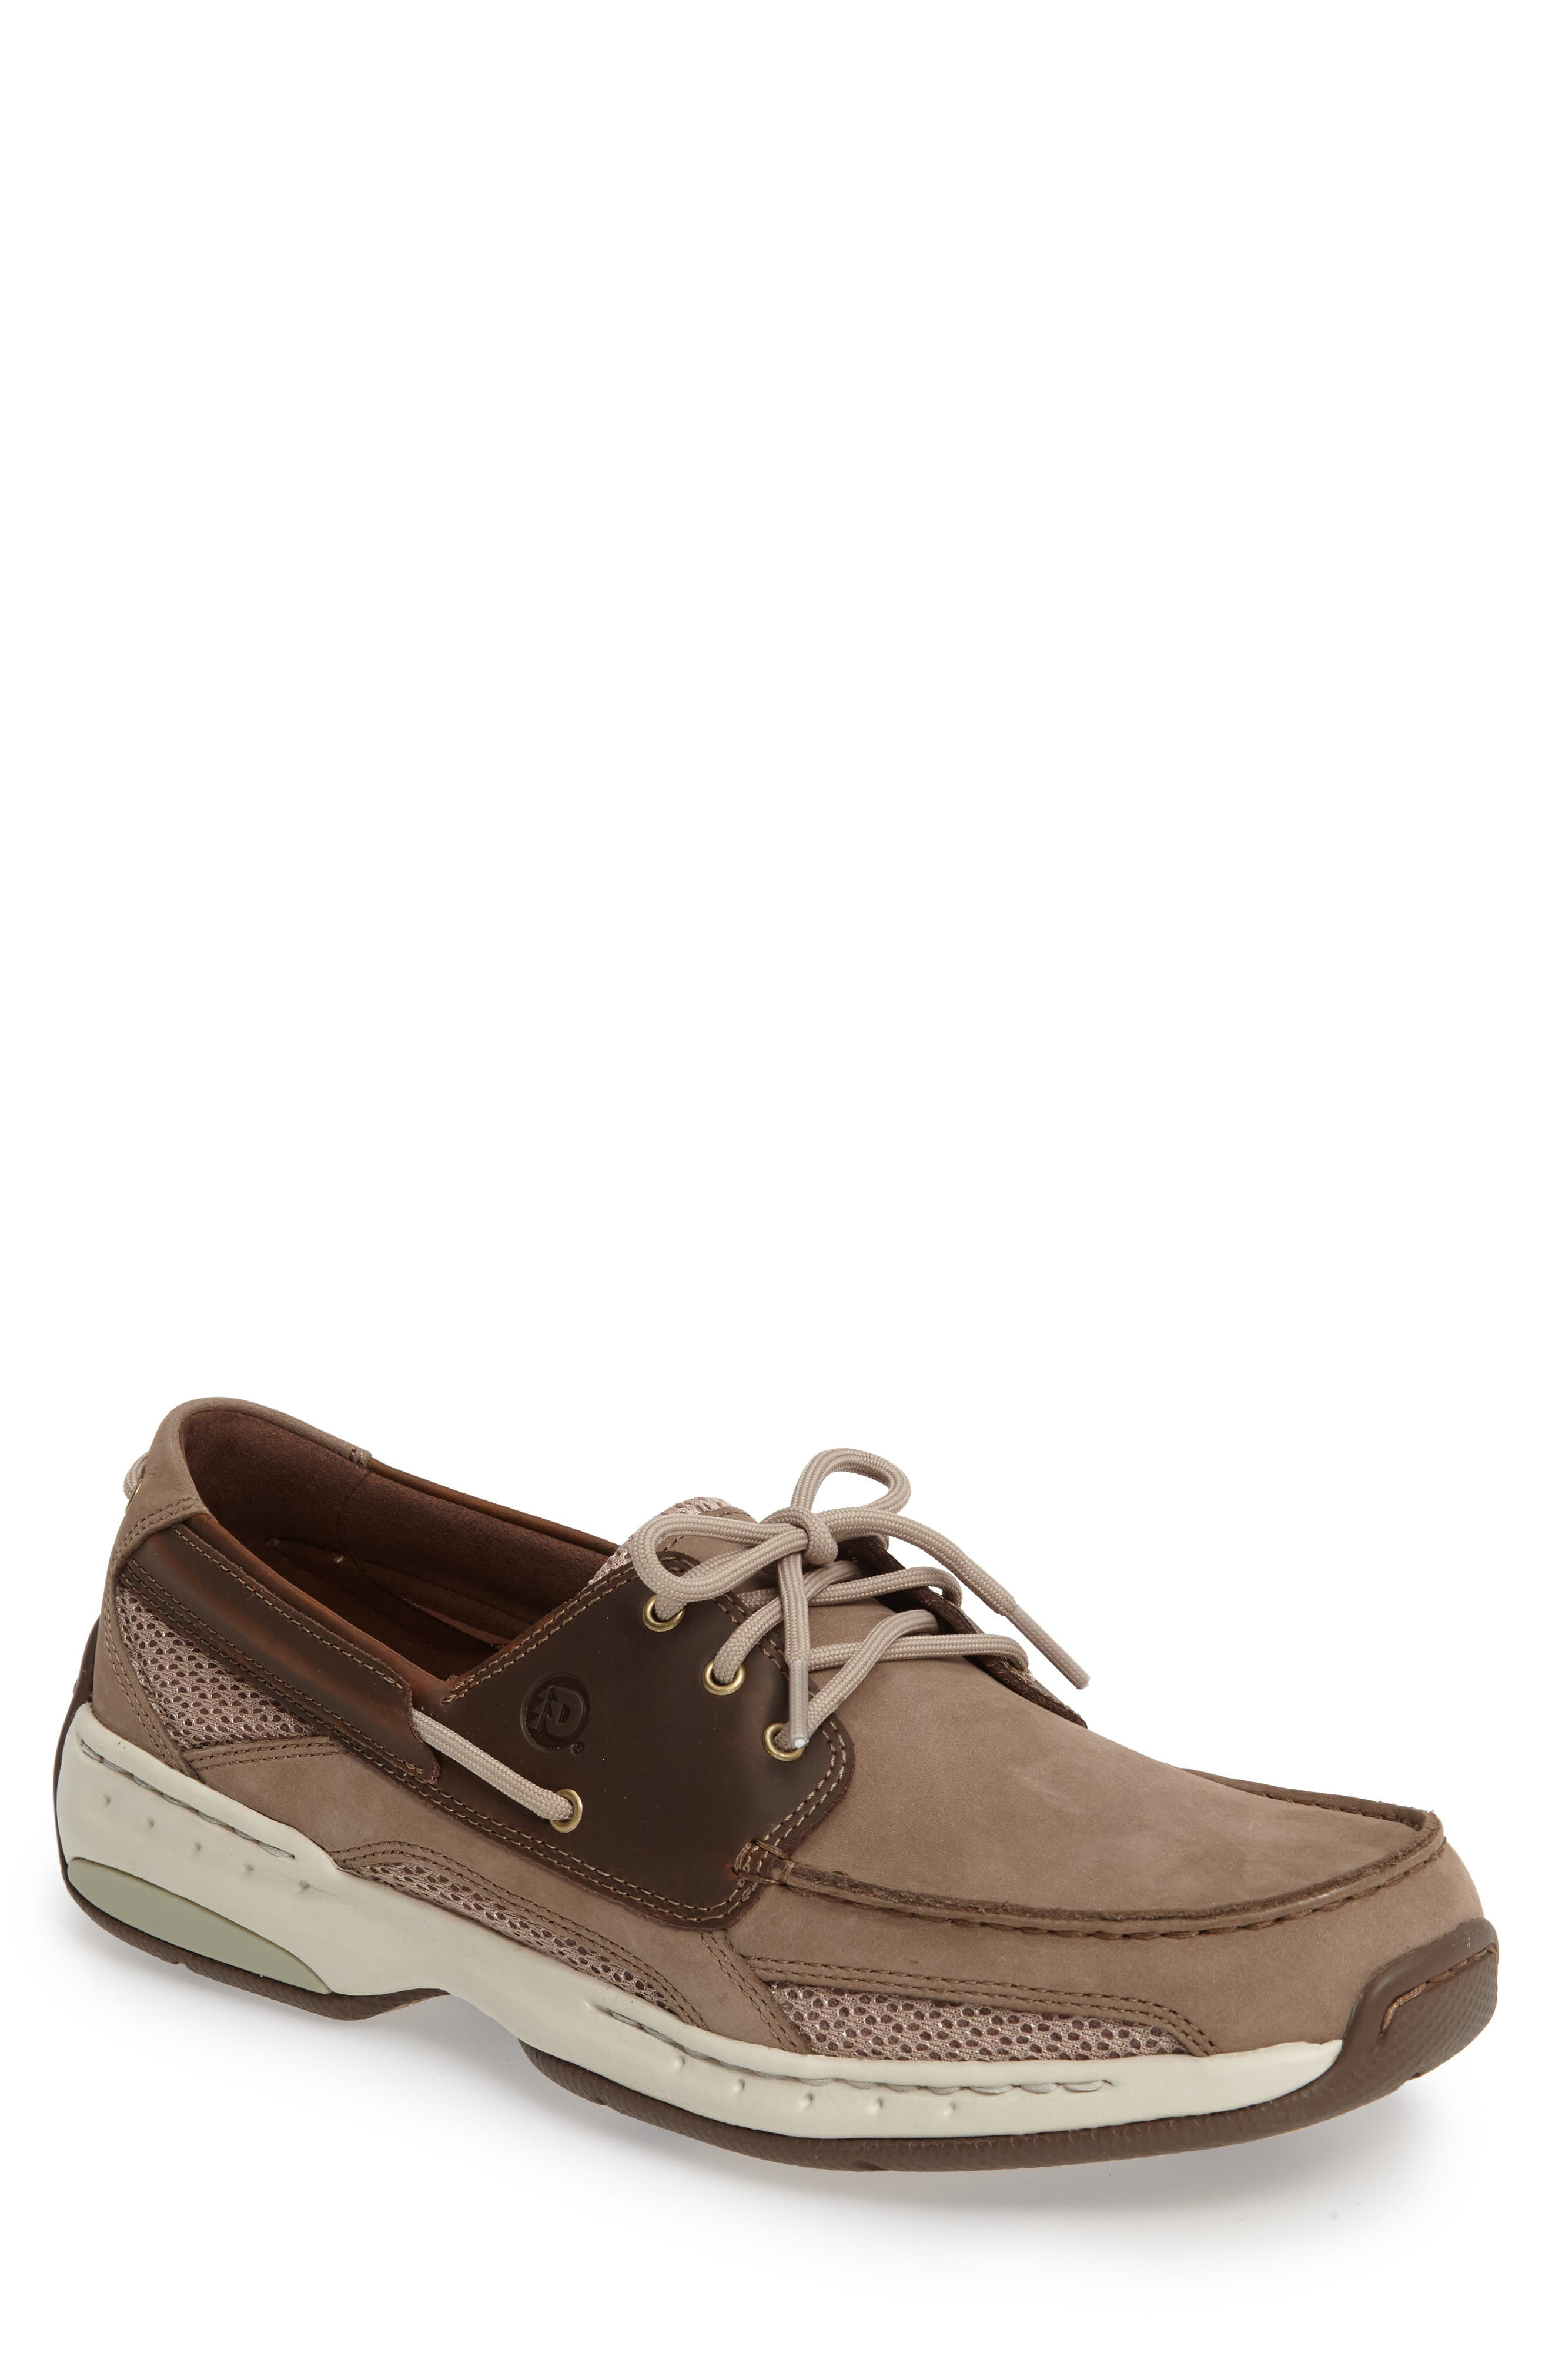 'Captain' Boat Shoe,                         Main,                         color, TAUPE TWO TONE